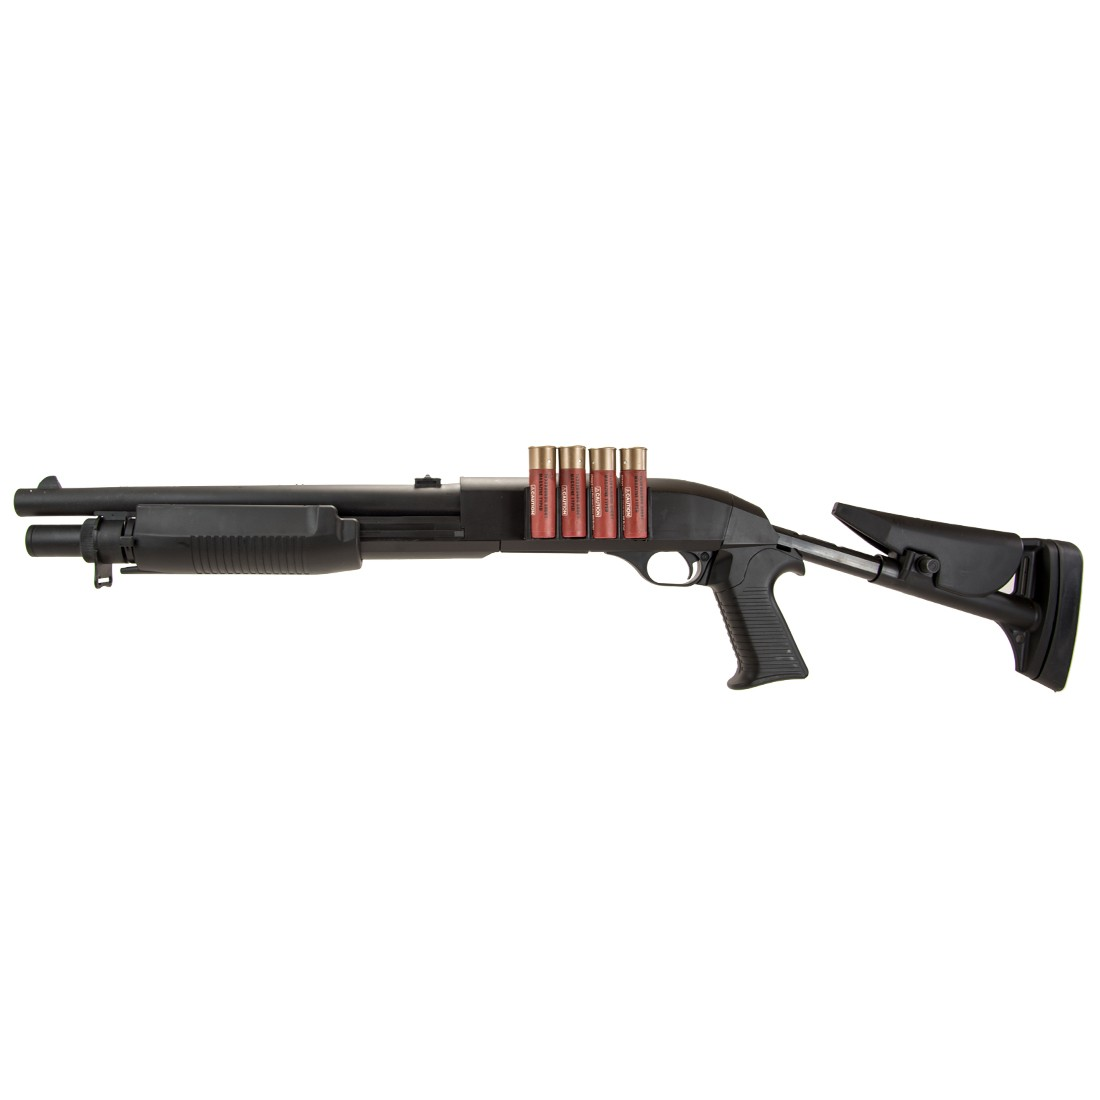 ASG Franchi SAS 12 Retractable Flex Stock Shotgun